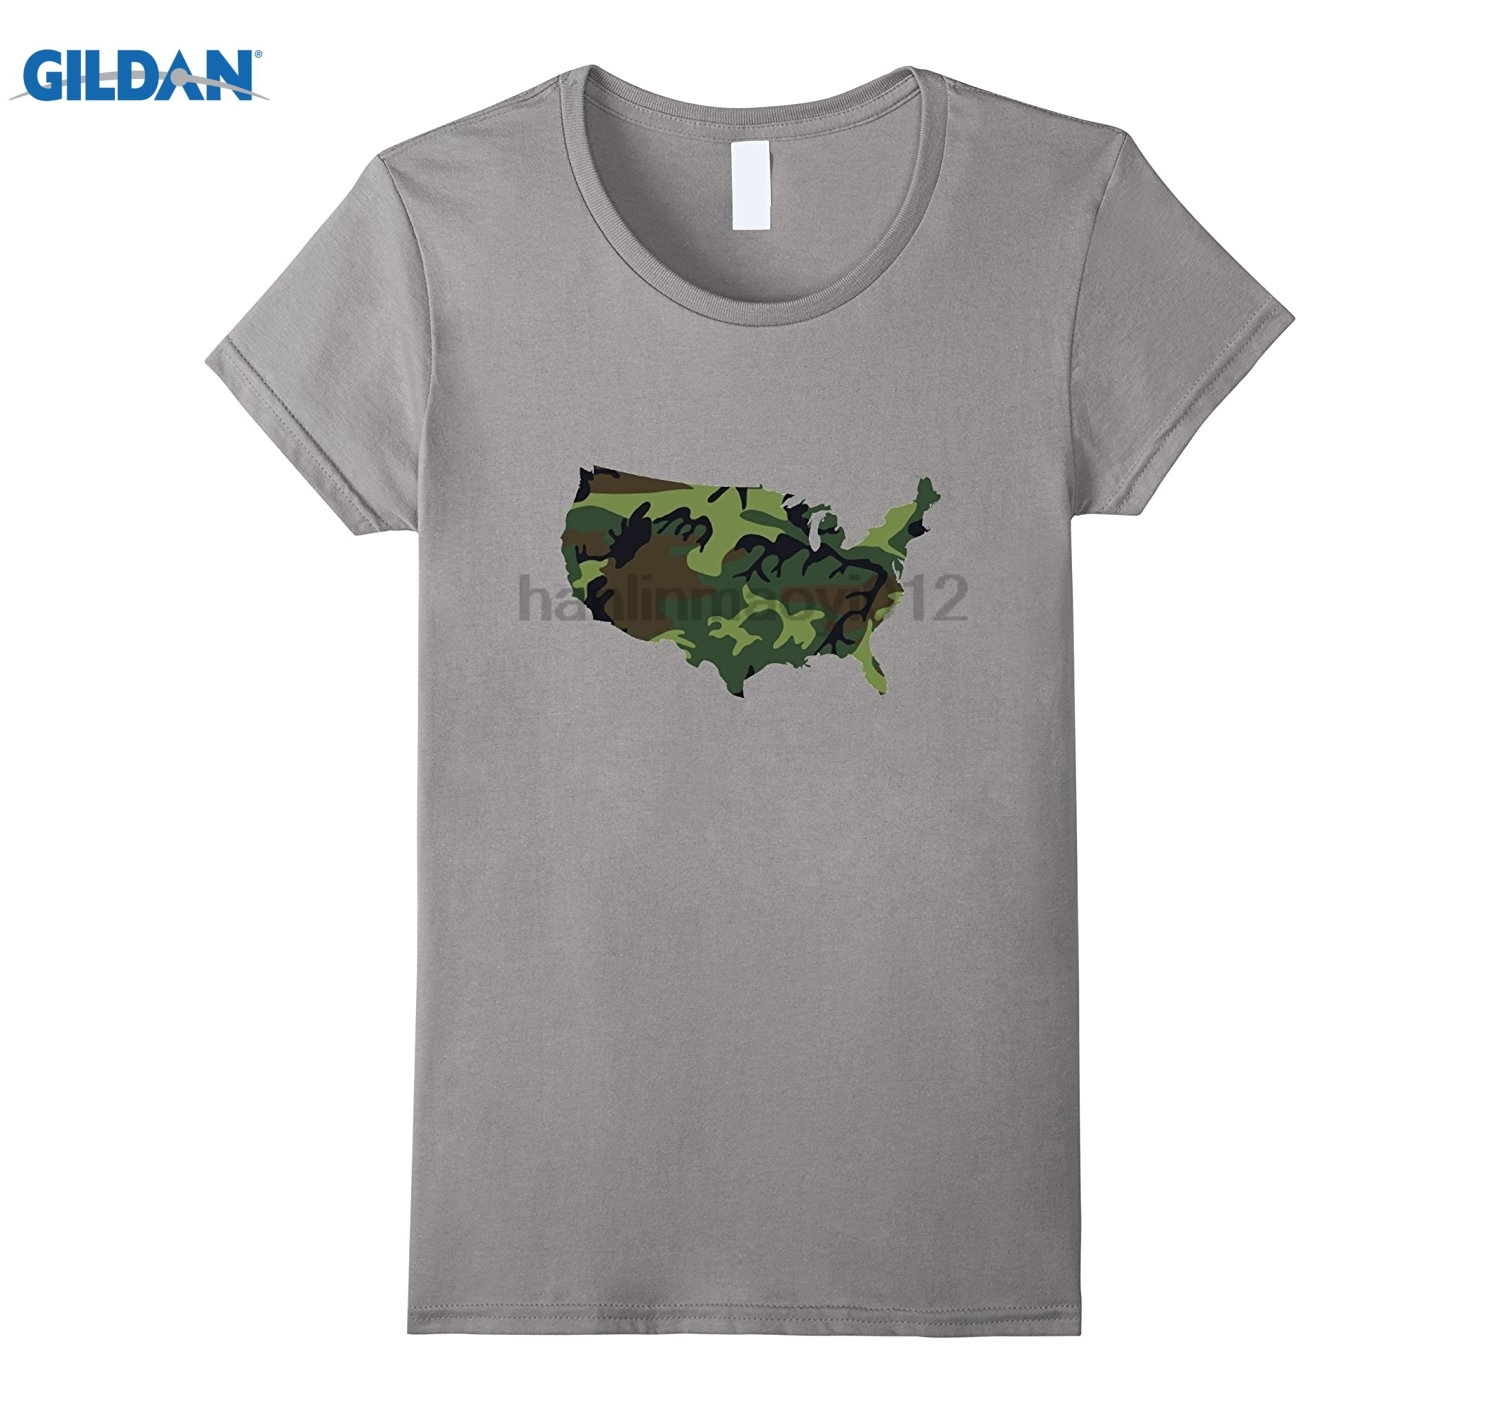 GILDAN Camo Camouflage USA Map t-shirt sunglasses women T-shirt